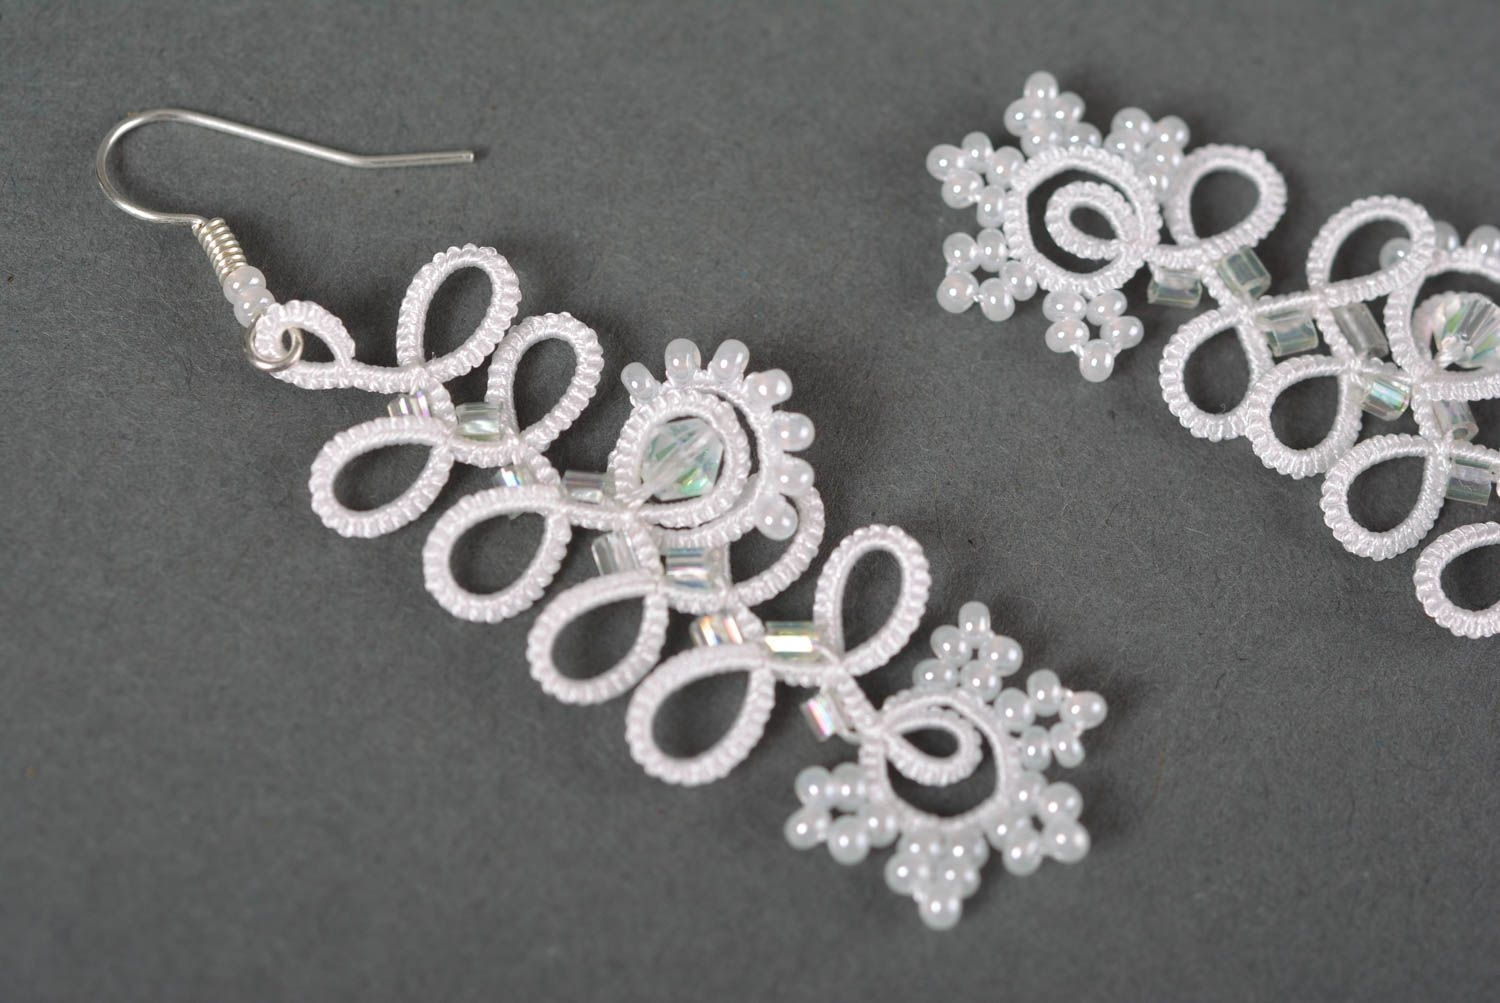 12bf0fb0e19 Handmade earrings beaded jewelry fashion accessories tatting lace gifts for  girl